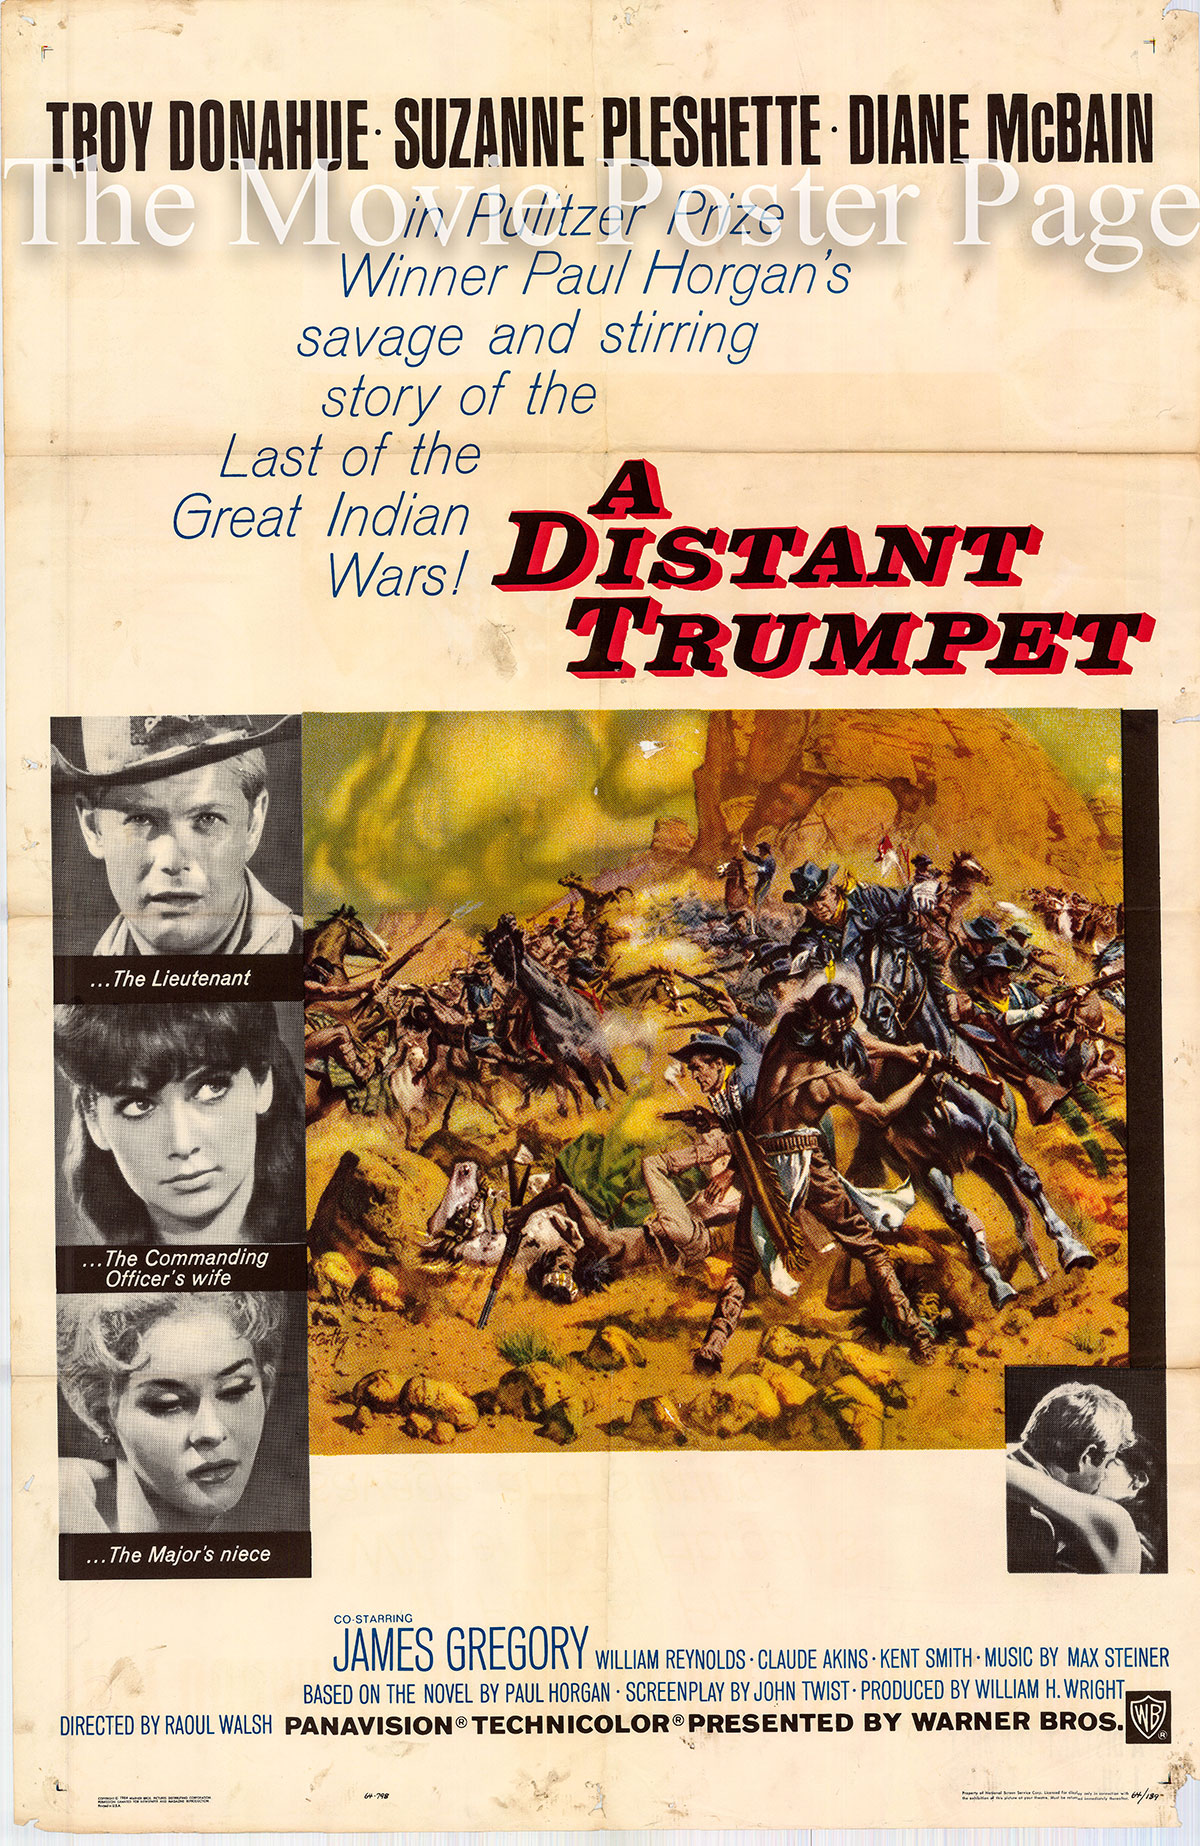 Pictured is a US one-sheet promotional poster for the 1964 Raoul Walsh film A Distant Trumpet starring Troy Donahue and Suzanne Pleshett.